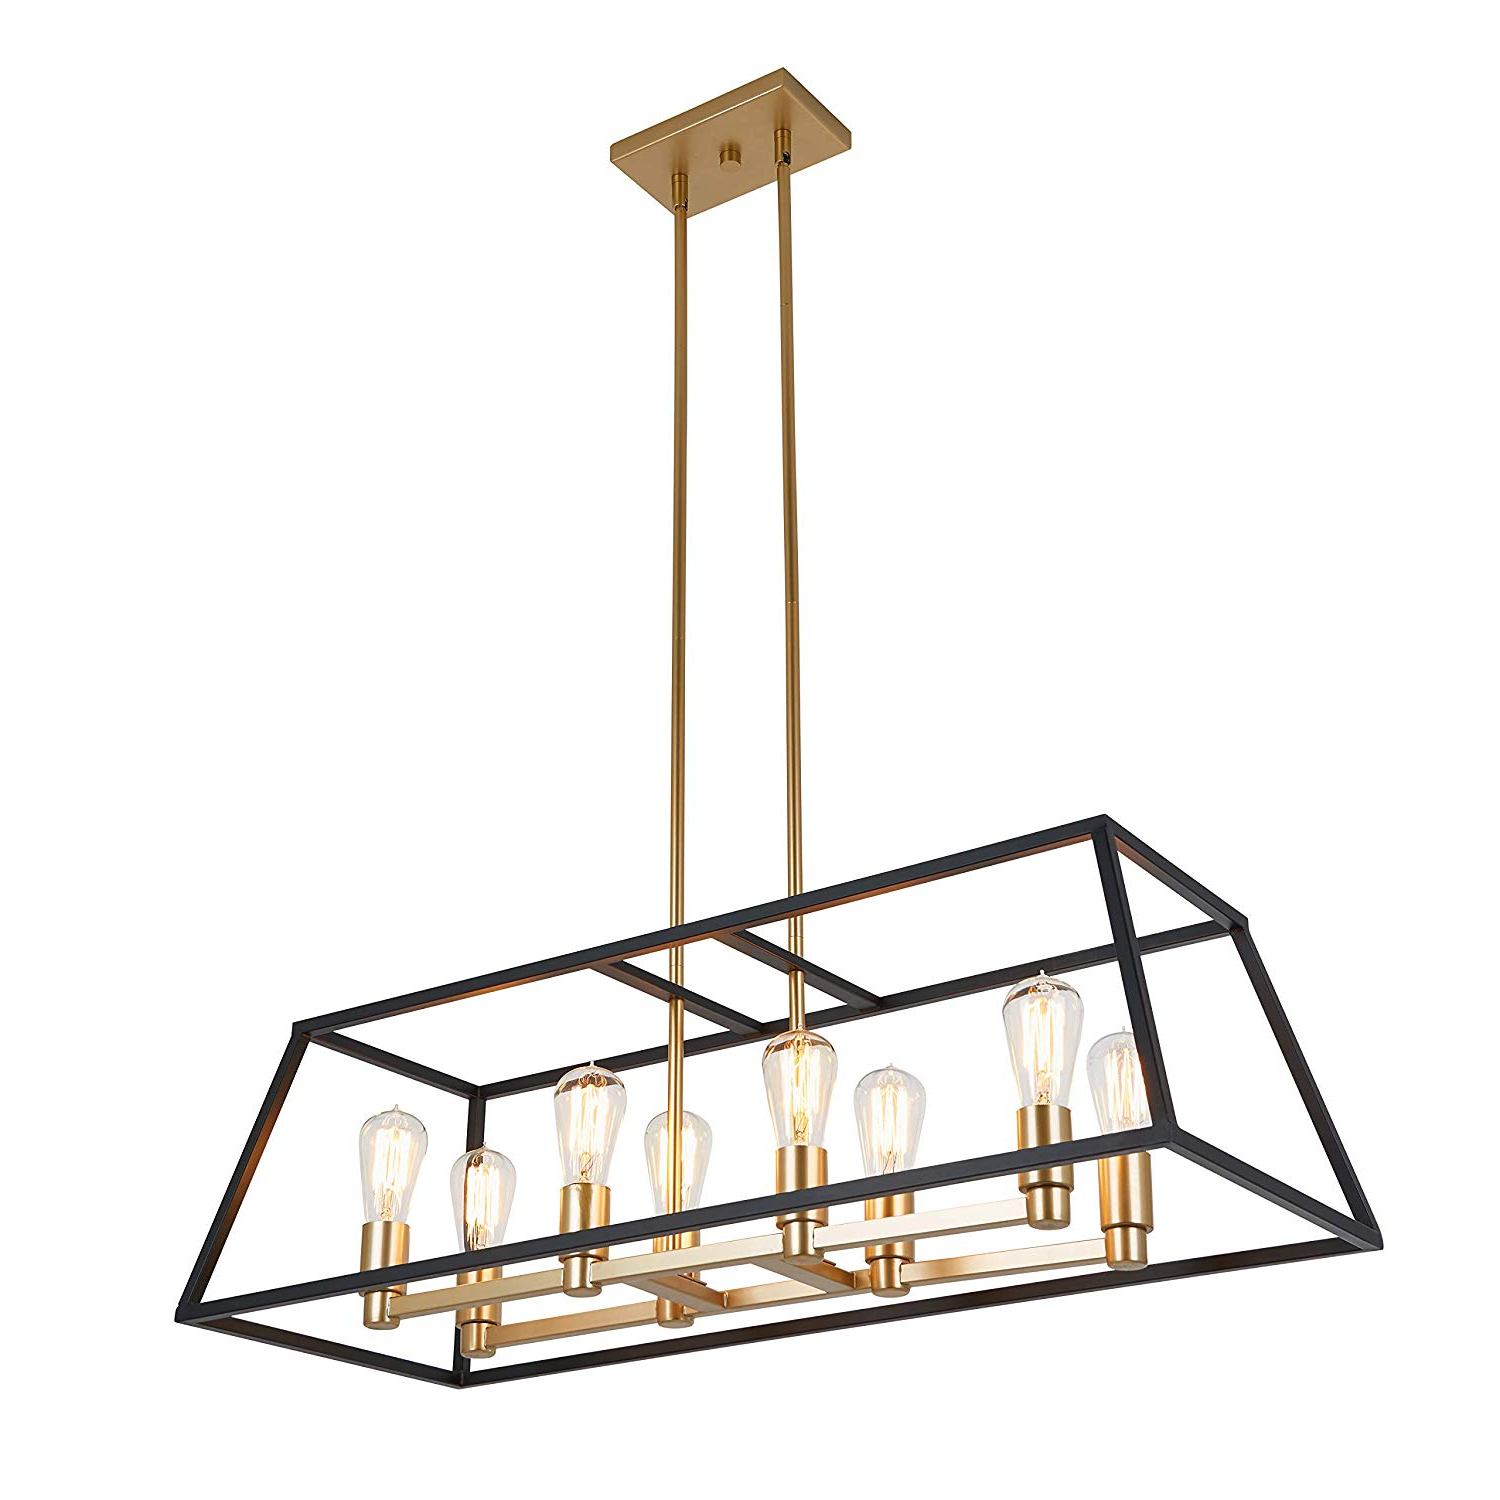 Artika Car36 On Rectangular 8 Pendant Light Fixture, Kitchen Island  Chandelier, With A Steel Black And Gold Finish, Age Brass For Widely Used Tiana 4 Light Geometric Chandeliers (View 9 of 25)